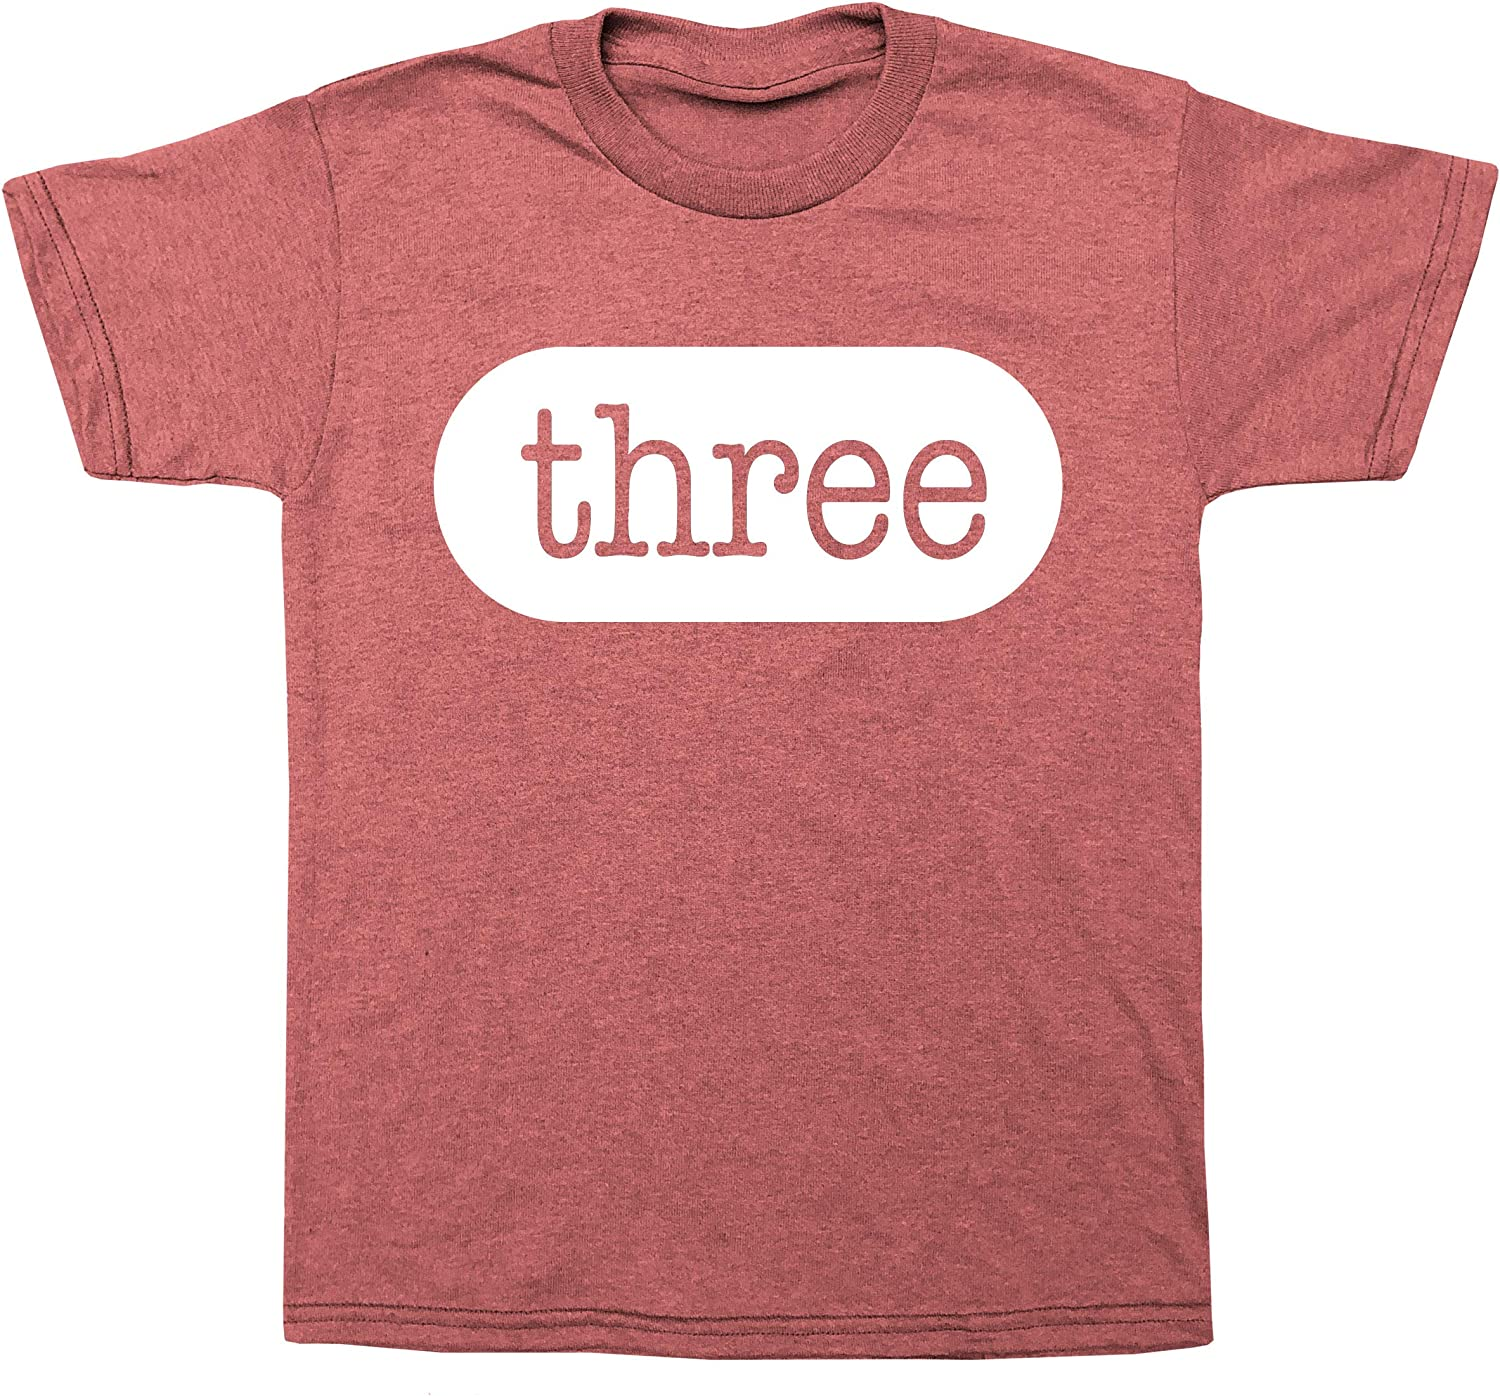 Happy Family Clothing Third Birthday Three 3rd Birthday Outfit Toddler 3 Year Old for Boys and Girls Type Font T-Shirt